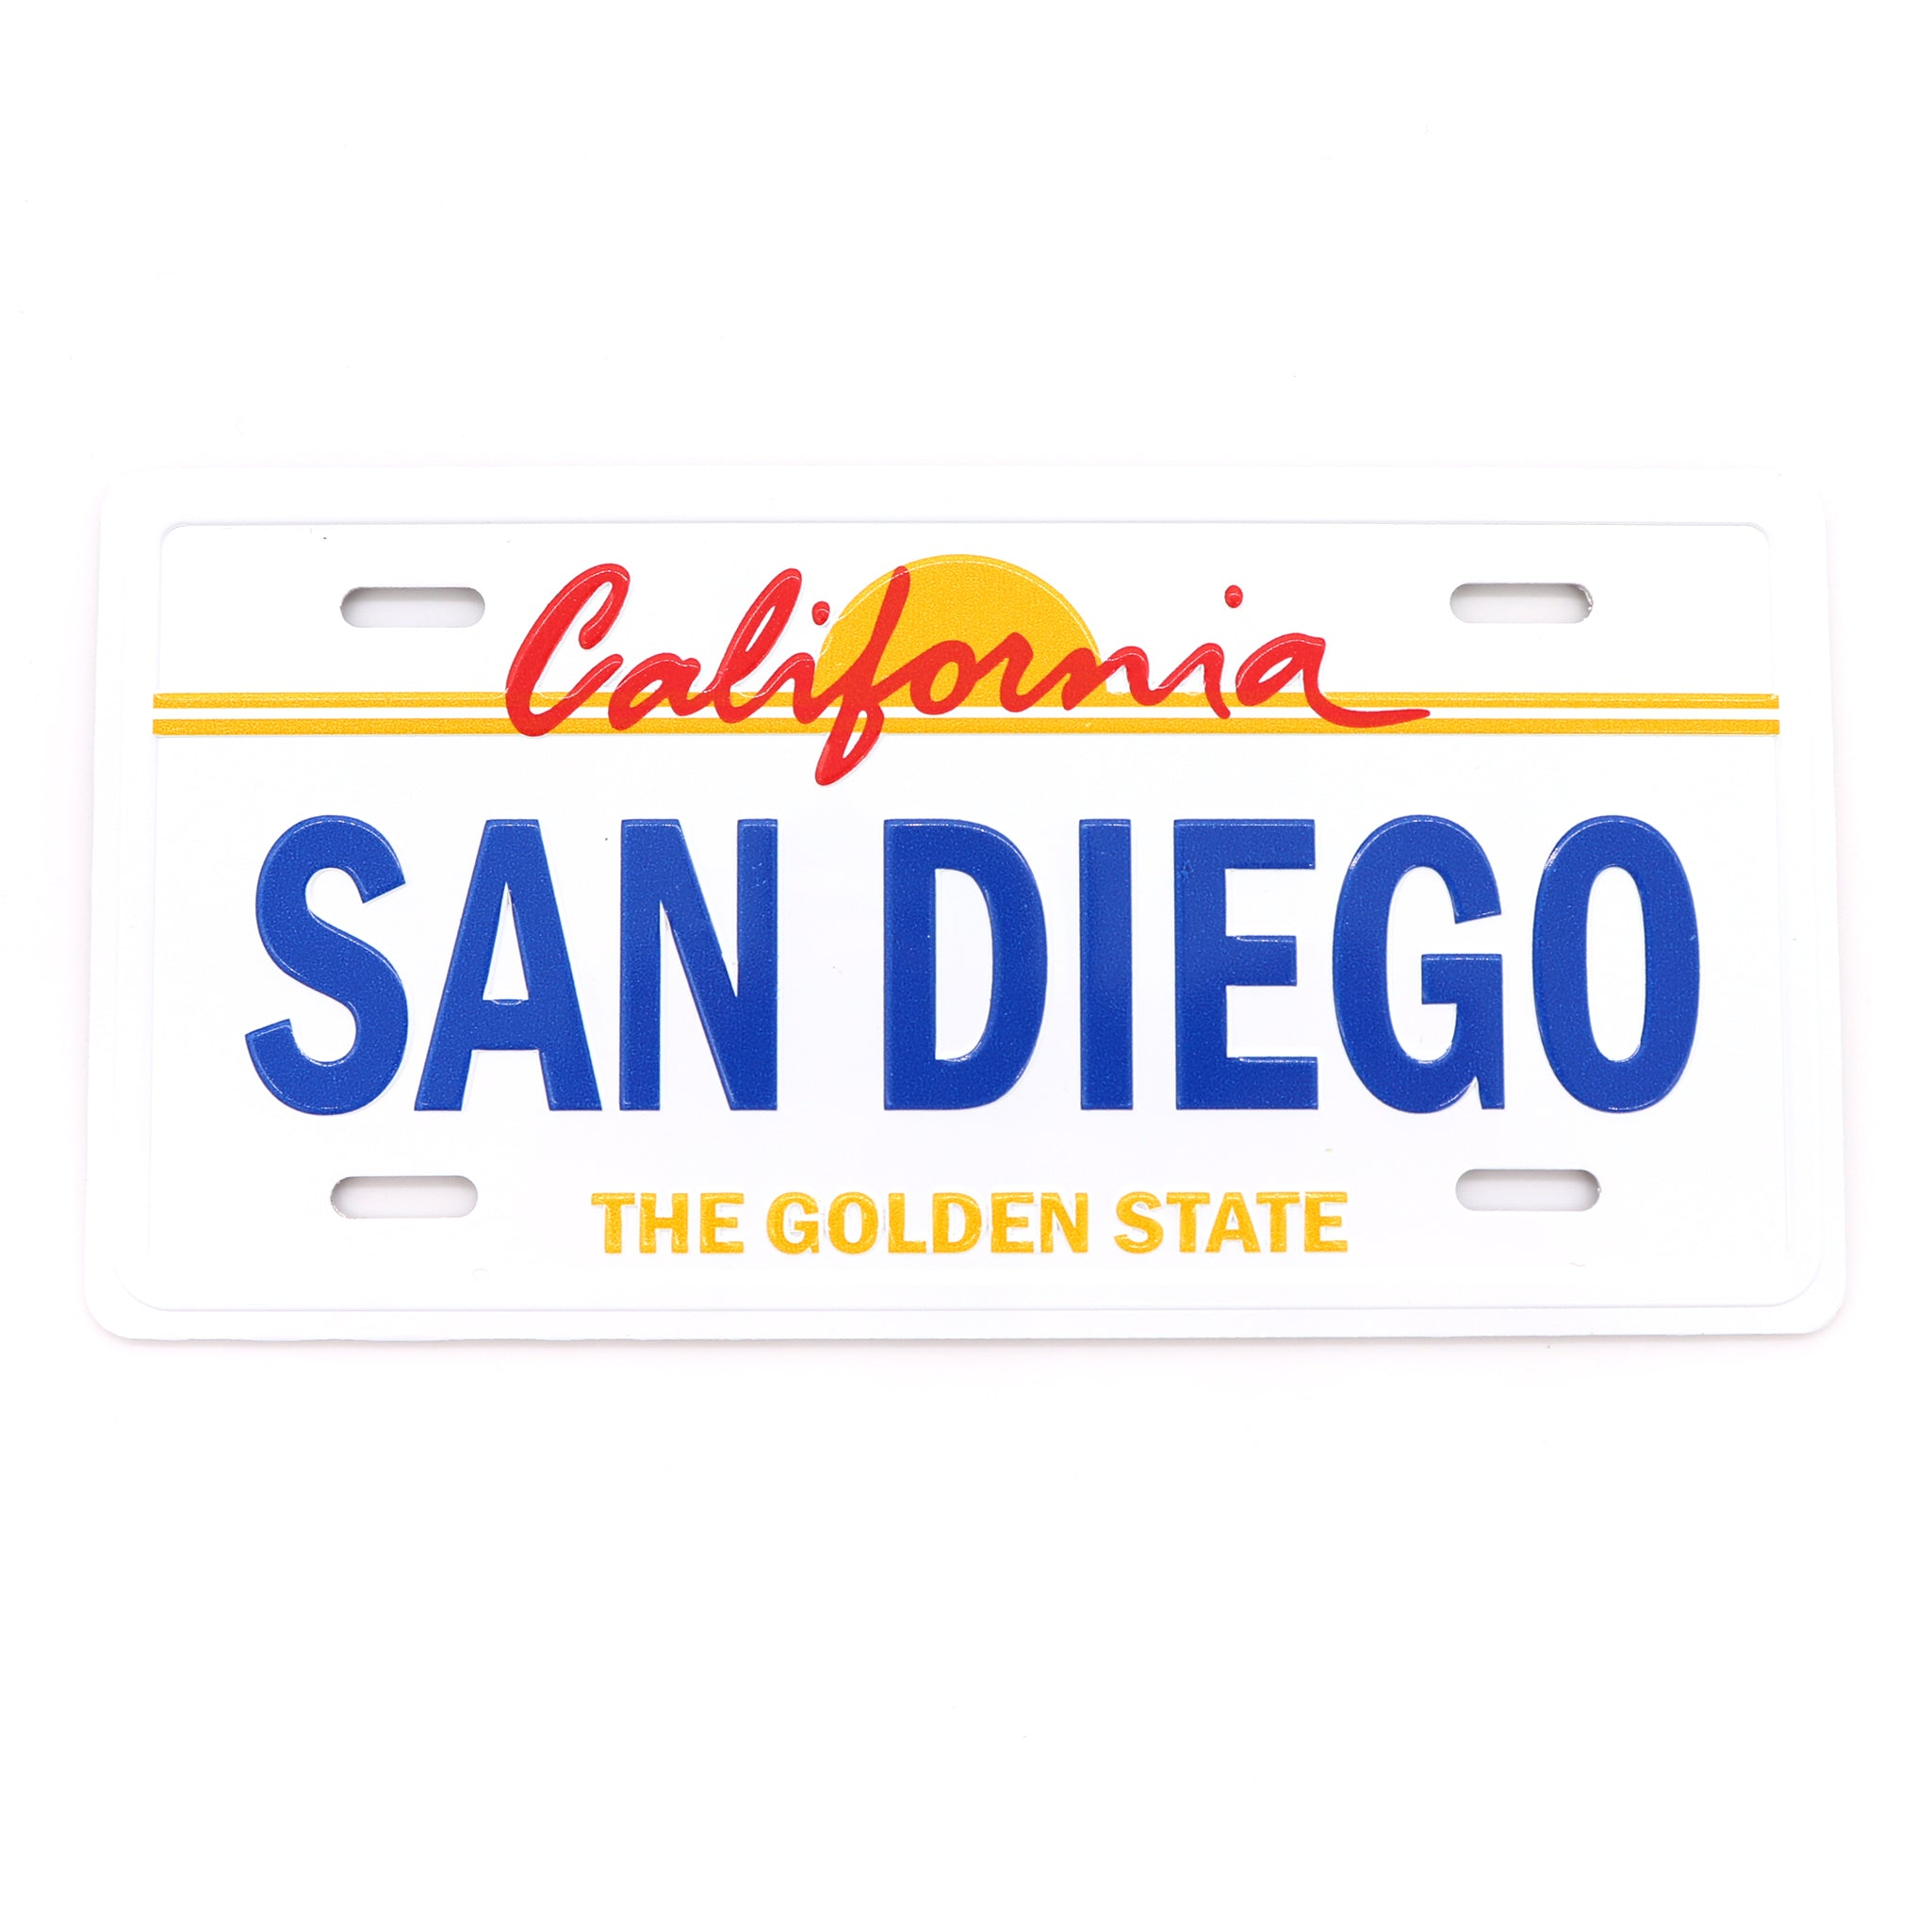 White rectangular magnet imitating the California License Plate with San Diego as the License number and The Golden State in smaller letters below